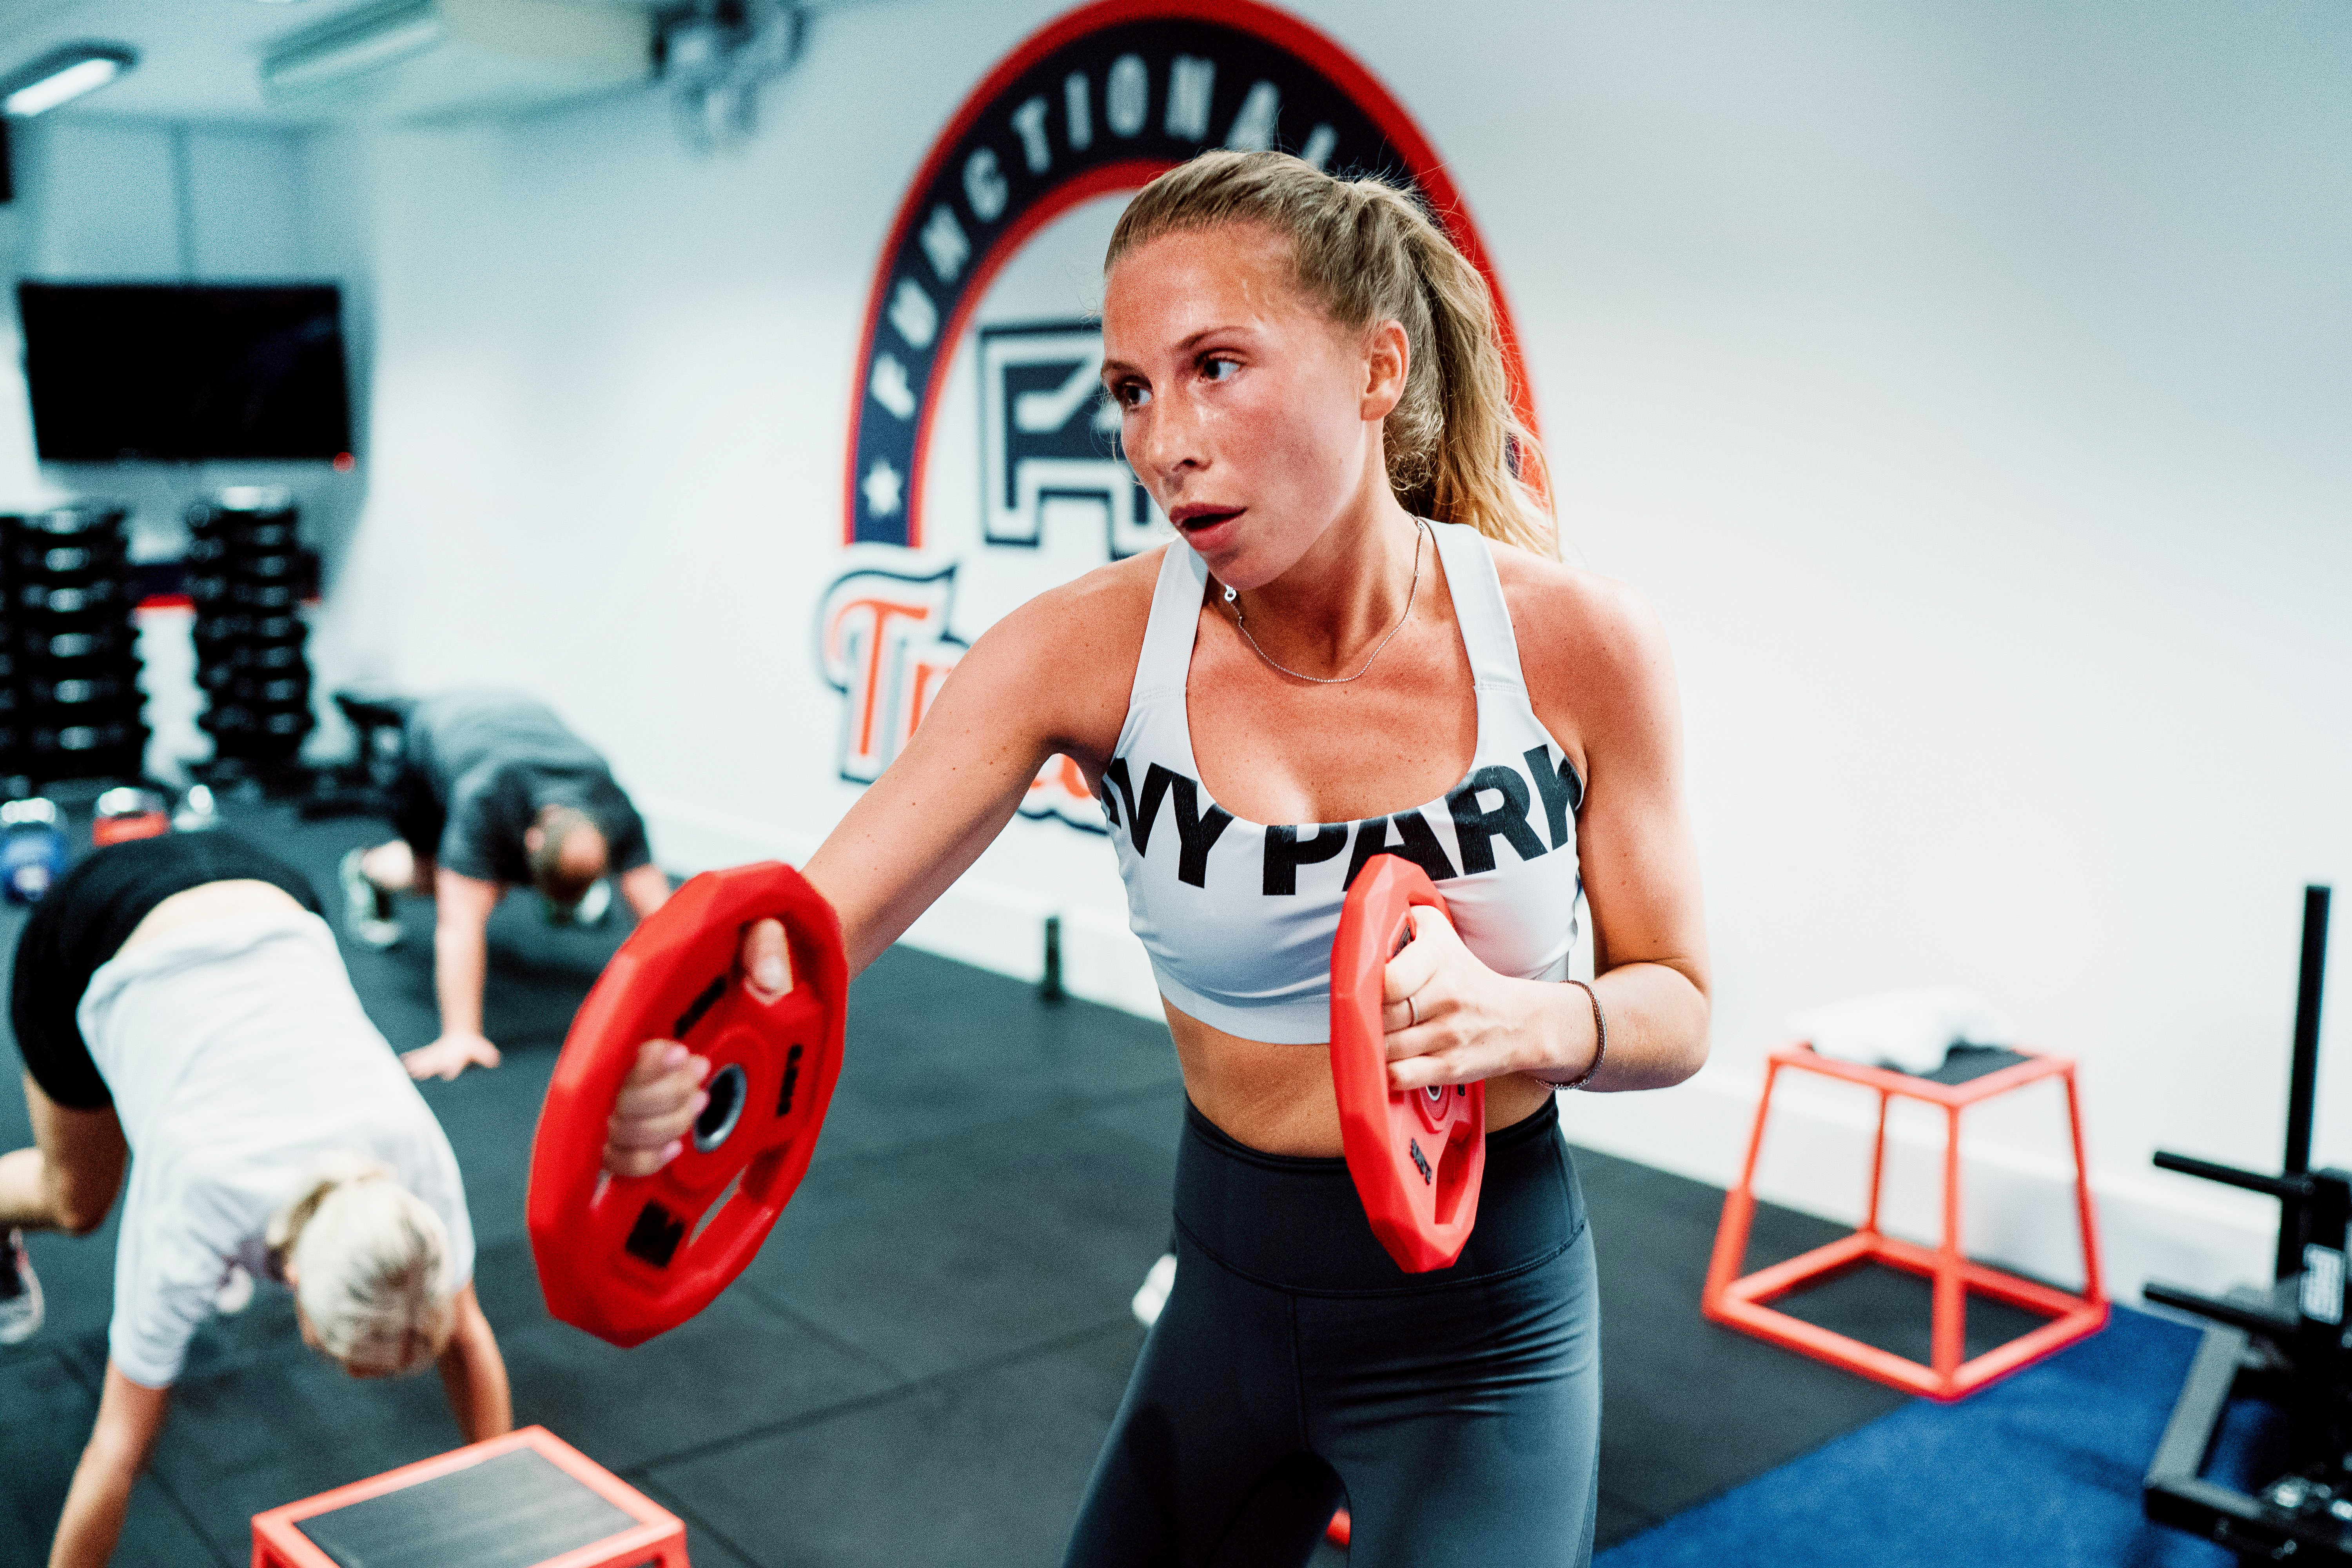 Punching power: F45 is innovating gyms using technology